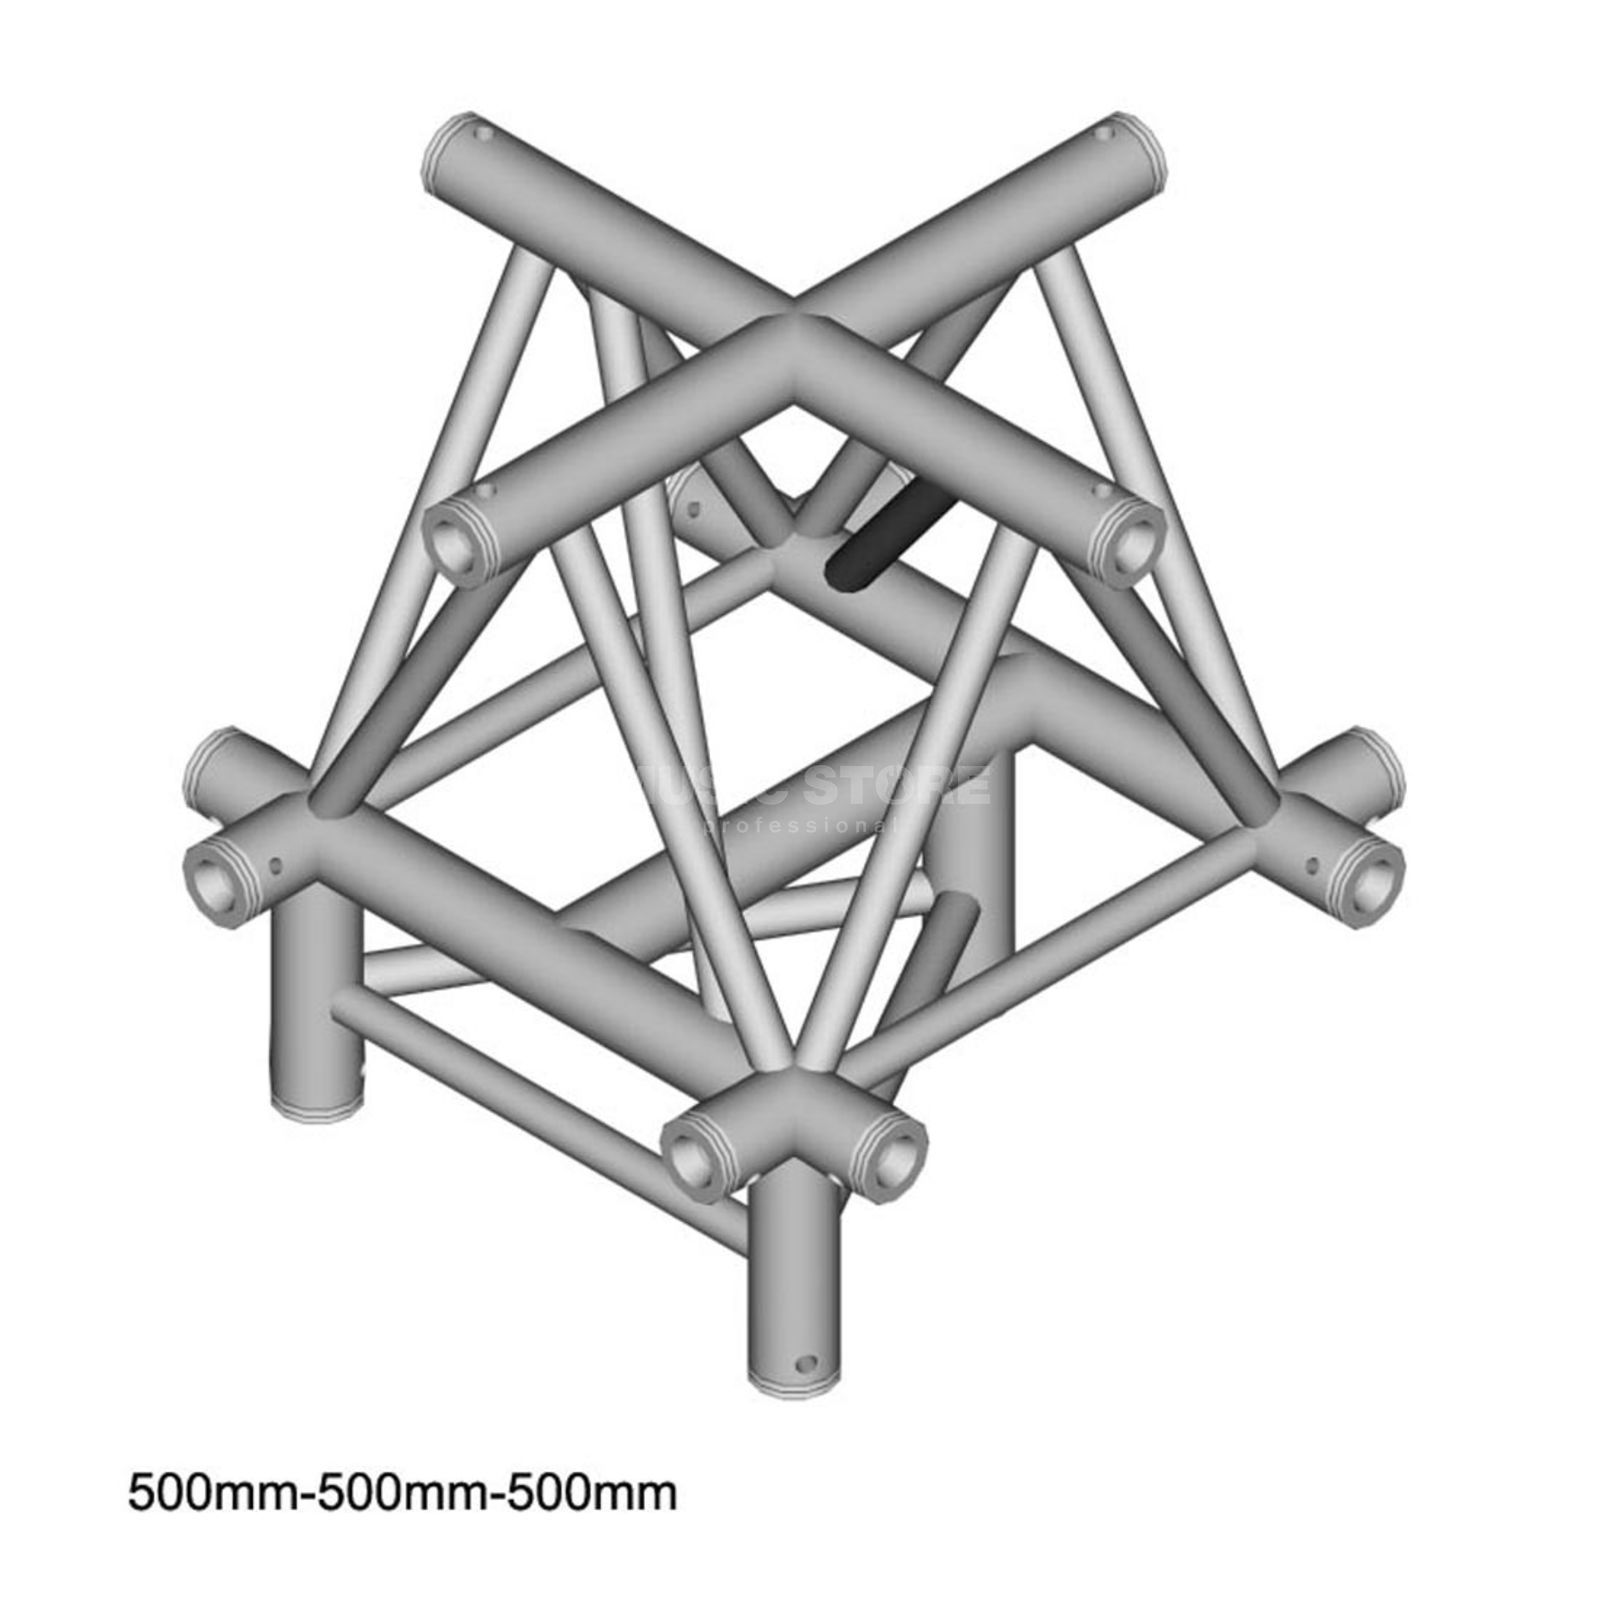 DURATRUSS DT 43 C52-XU, 3-Point Truss Cross + up Produktbillede